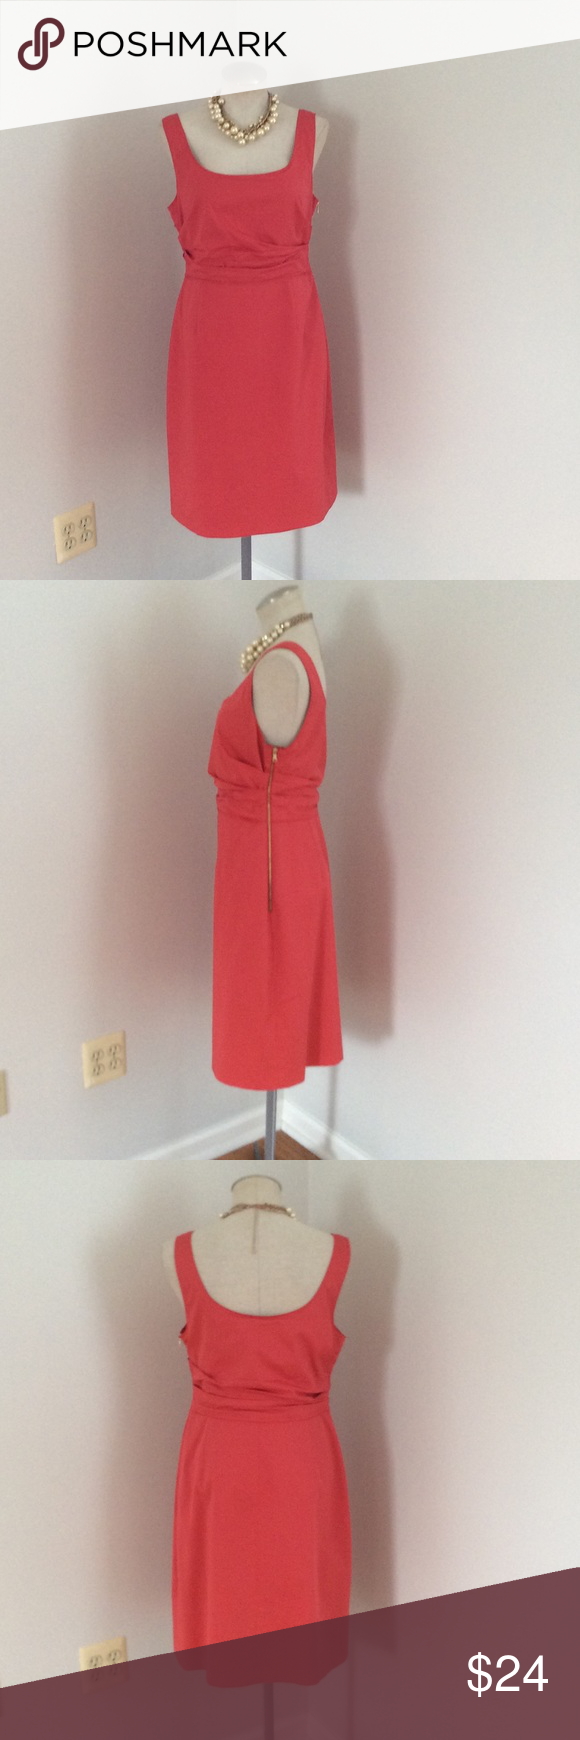 "Elie Tahari Coral Dress Coral dress by Elie Tahari in a size 12. Just back from the dry cleaners. 39"" bust, 32"" waist Elie Tahari Dresses Midi"